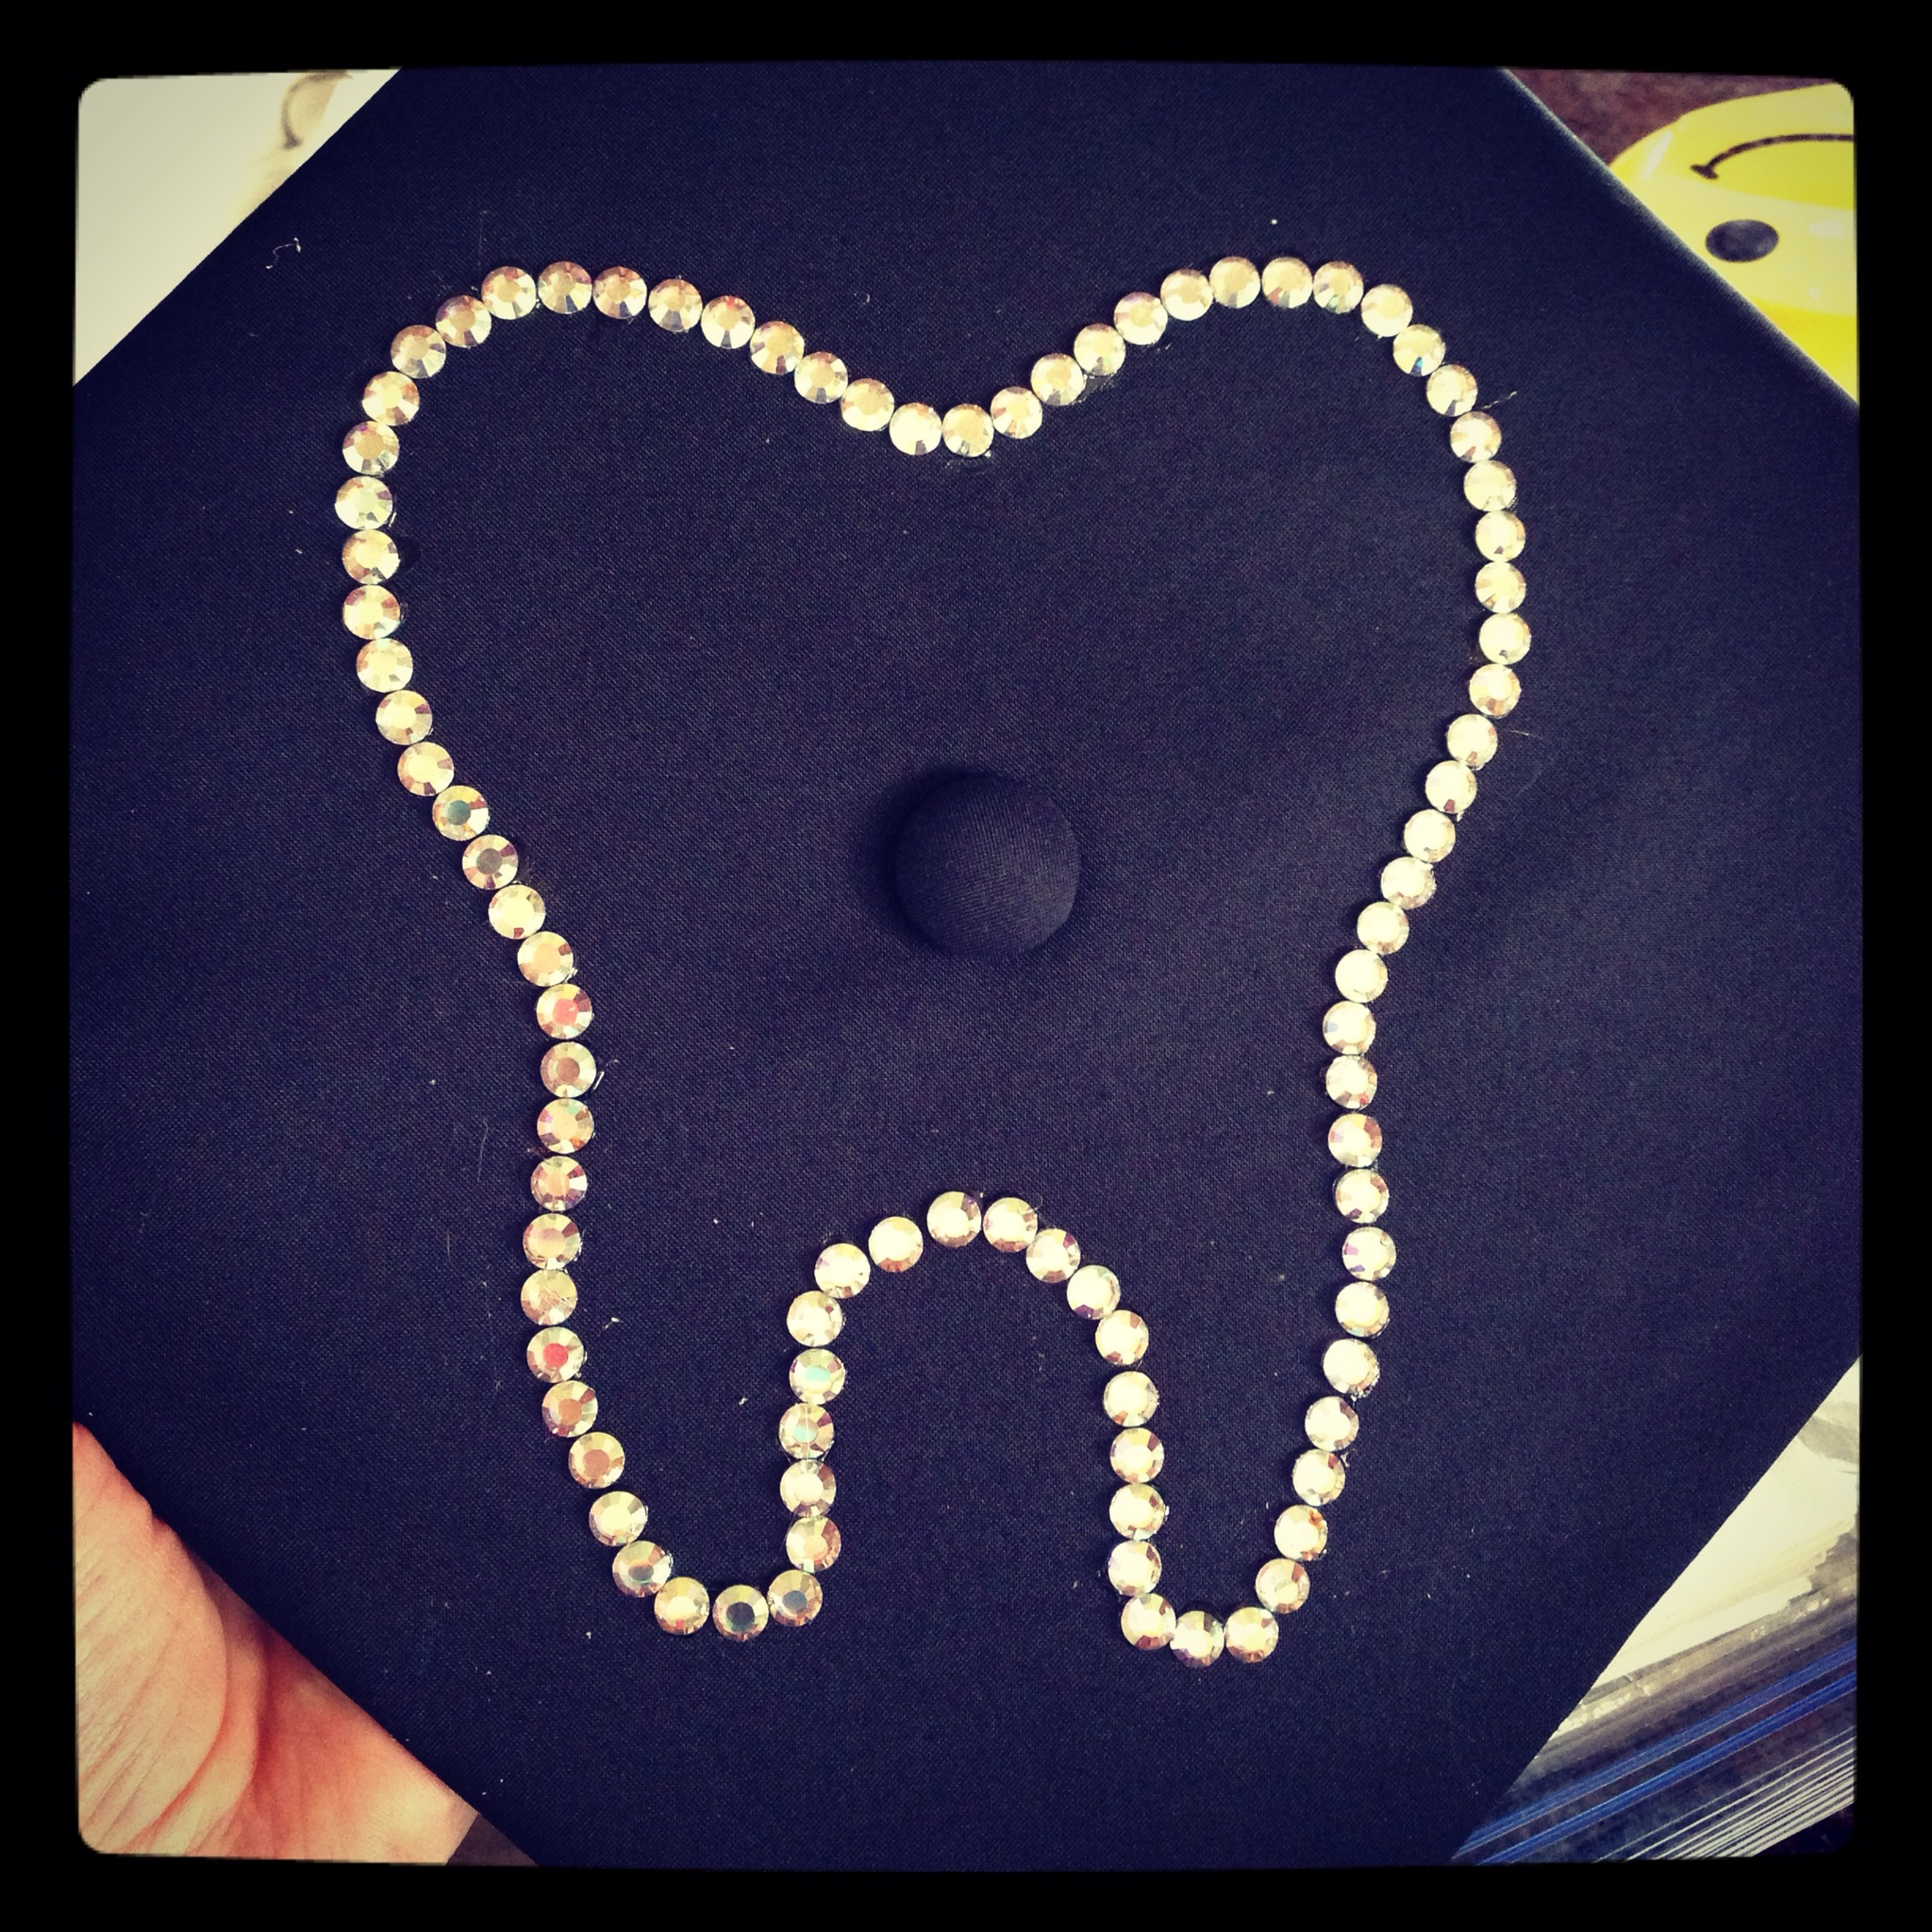 THE DAILY FLOSS BLOG OFFERS A GLANCE AT WHATu0027S NEW ON THE DENTAL SCENE EQUIPMENT EVENTS DENTISTS HUMOR LIFESTYLE.  sc 1 st  thedailyfloss.com & Dental gifts most likely to succeed with your graduate ...